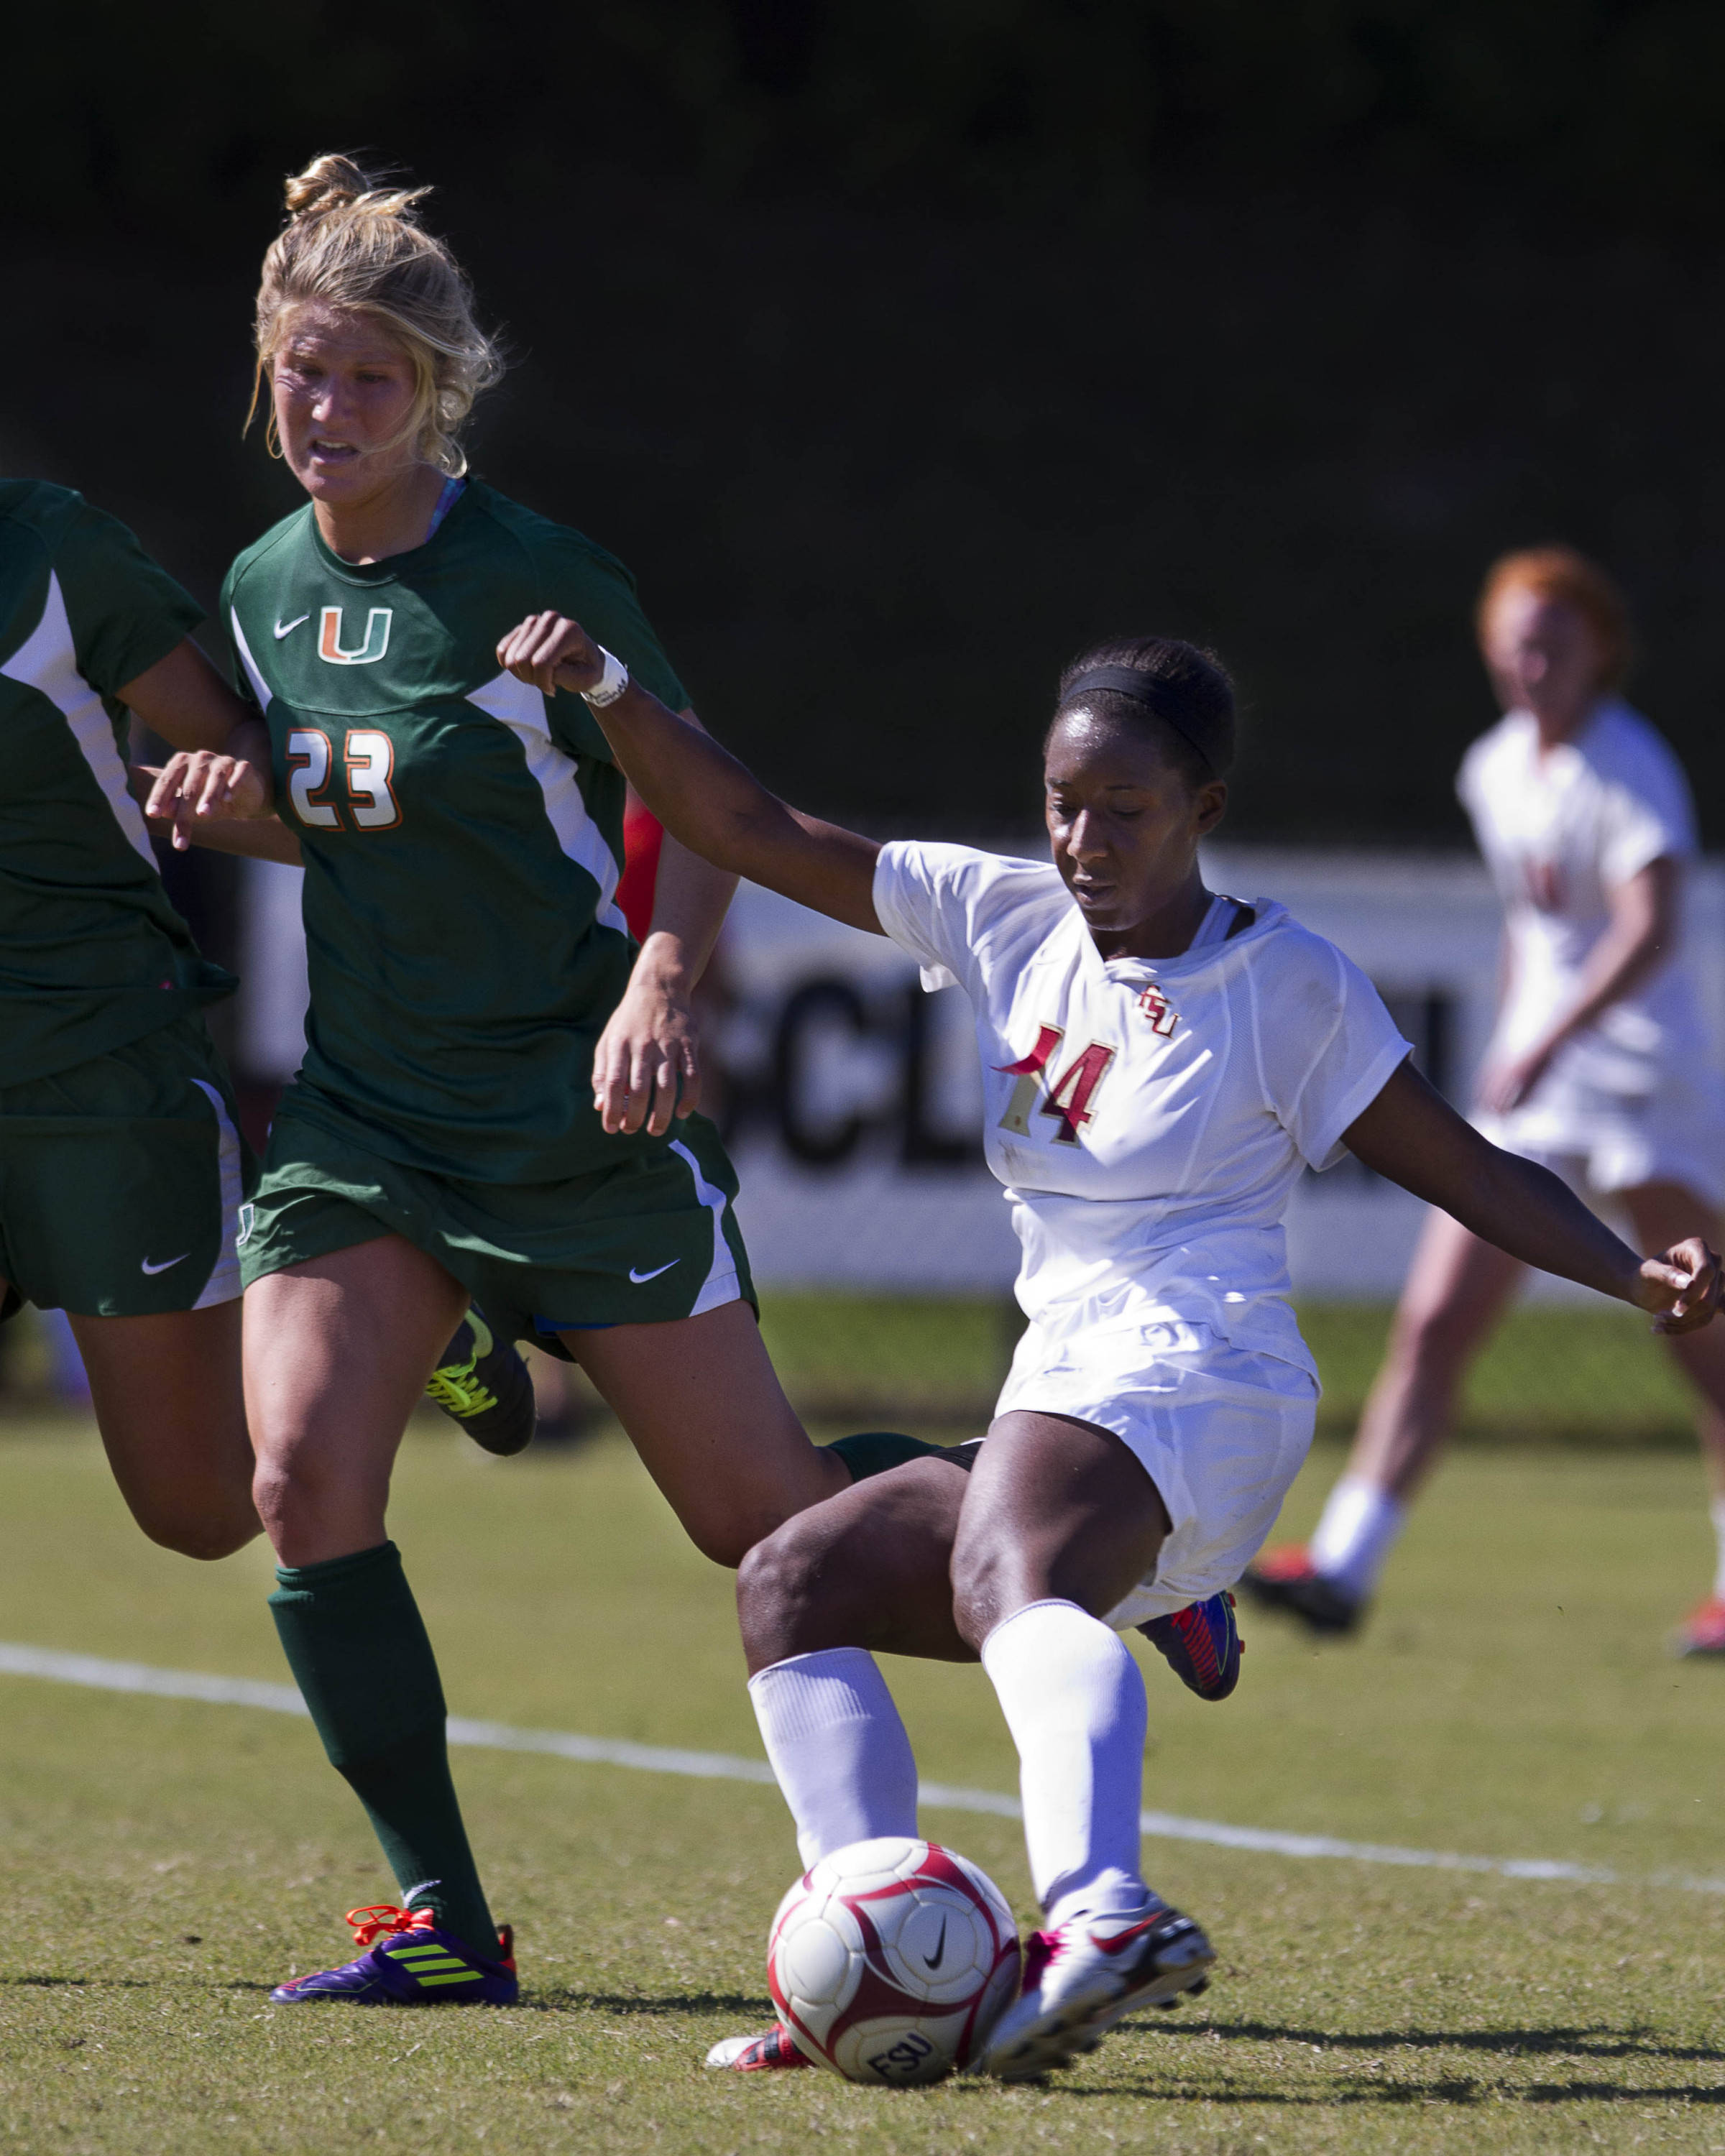 Tiffany McCarty (14) takes a left footed shot to score a goal for the Seminoles.